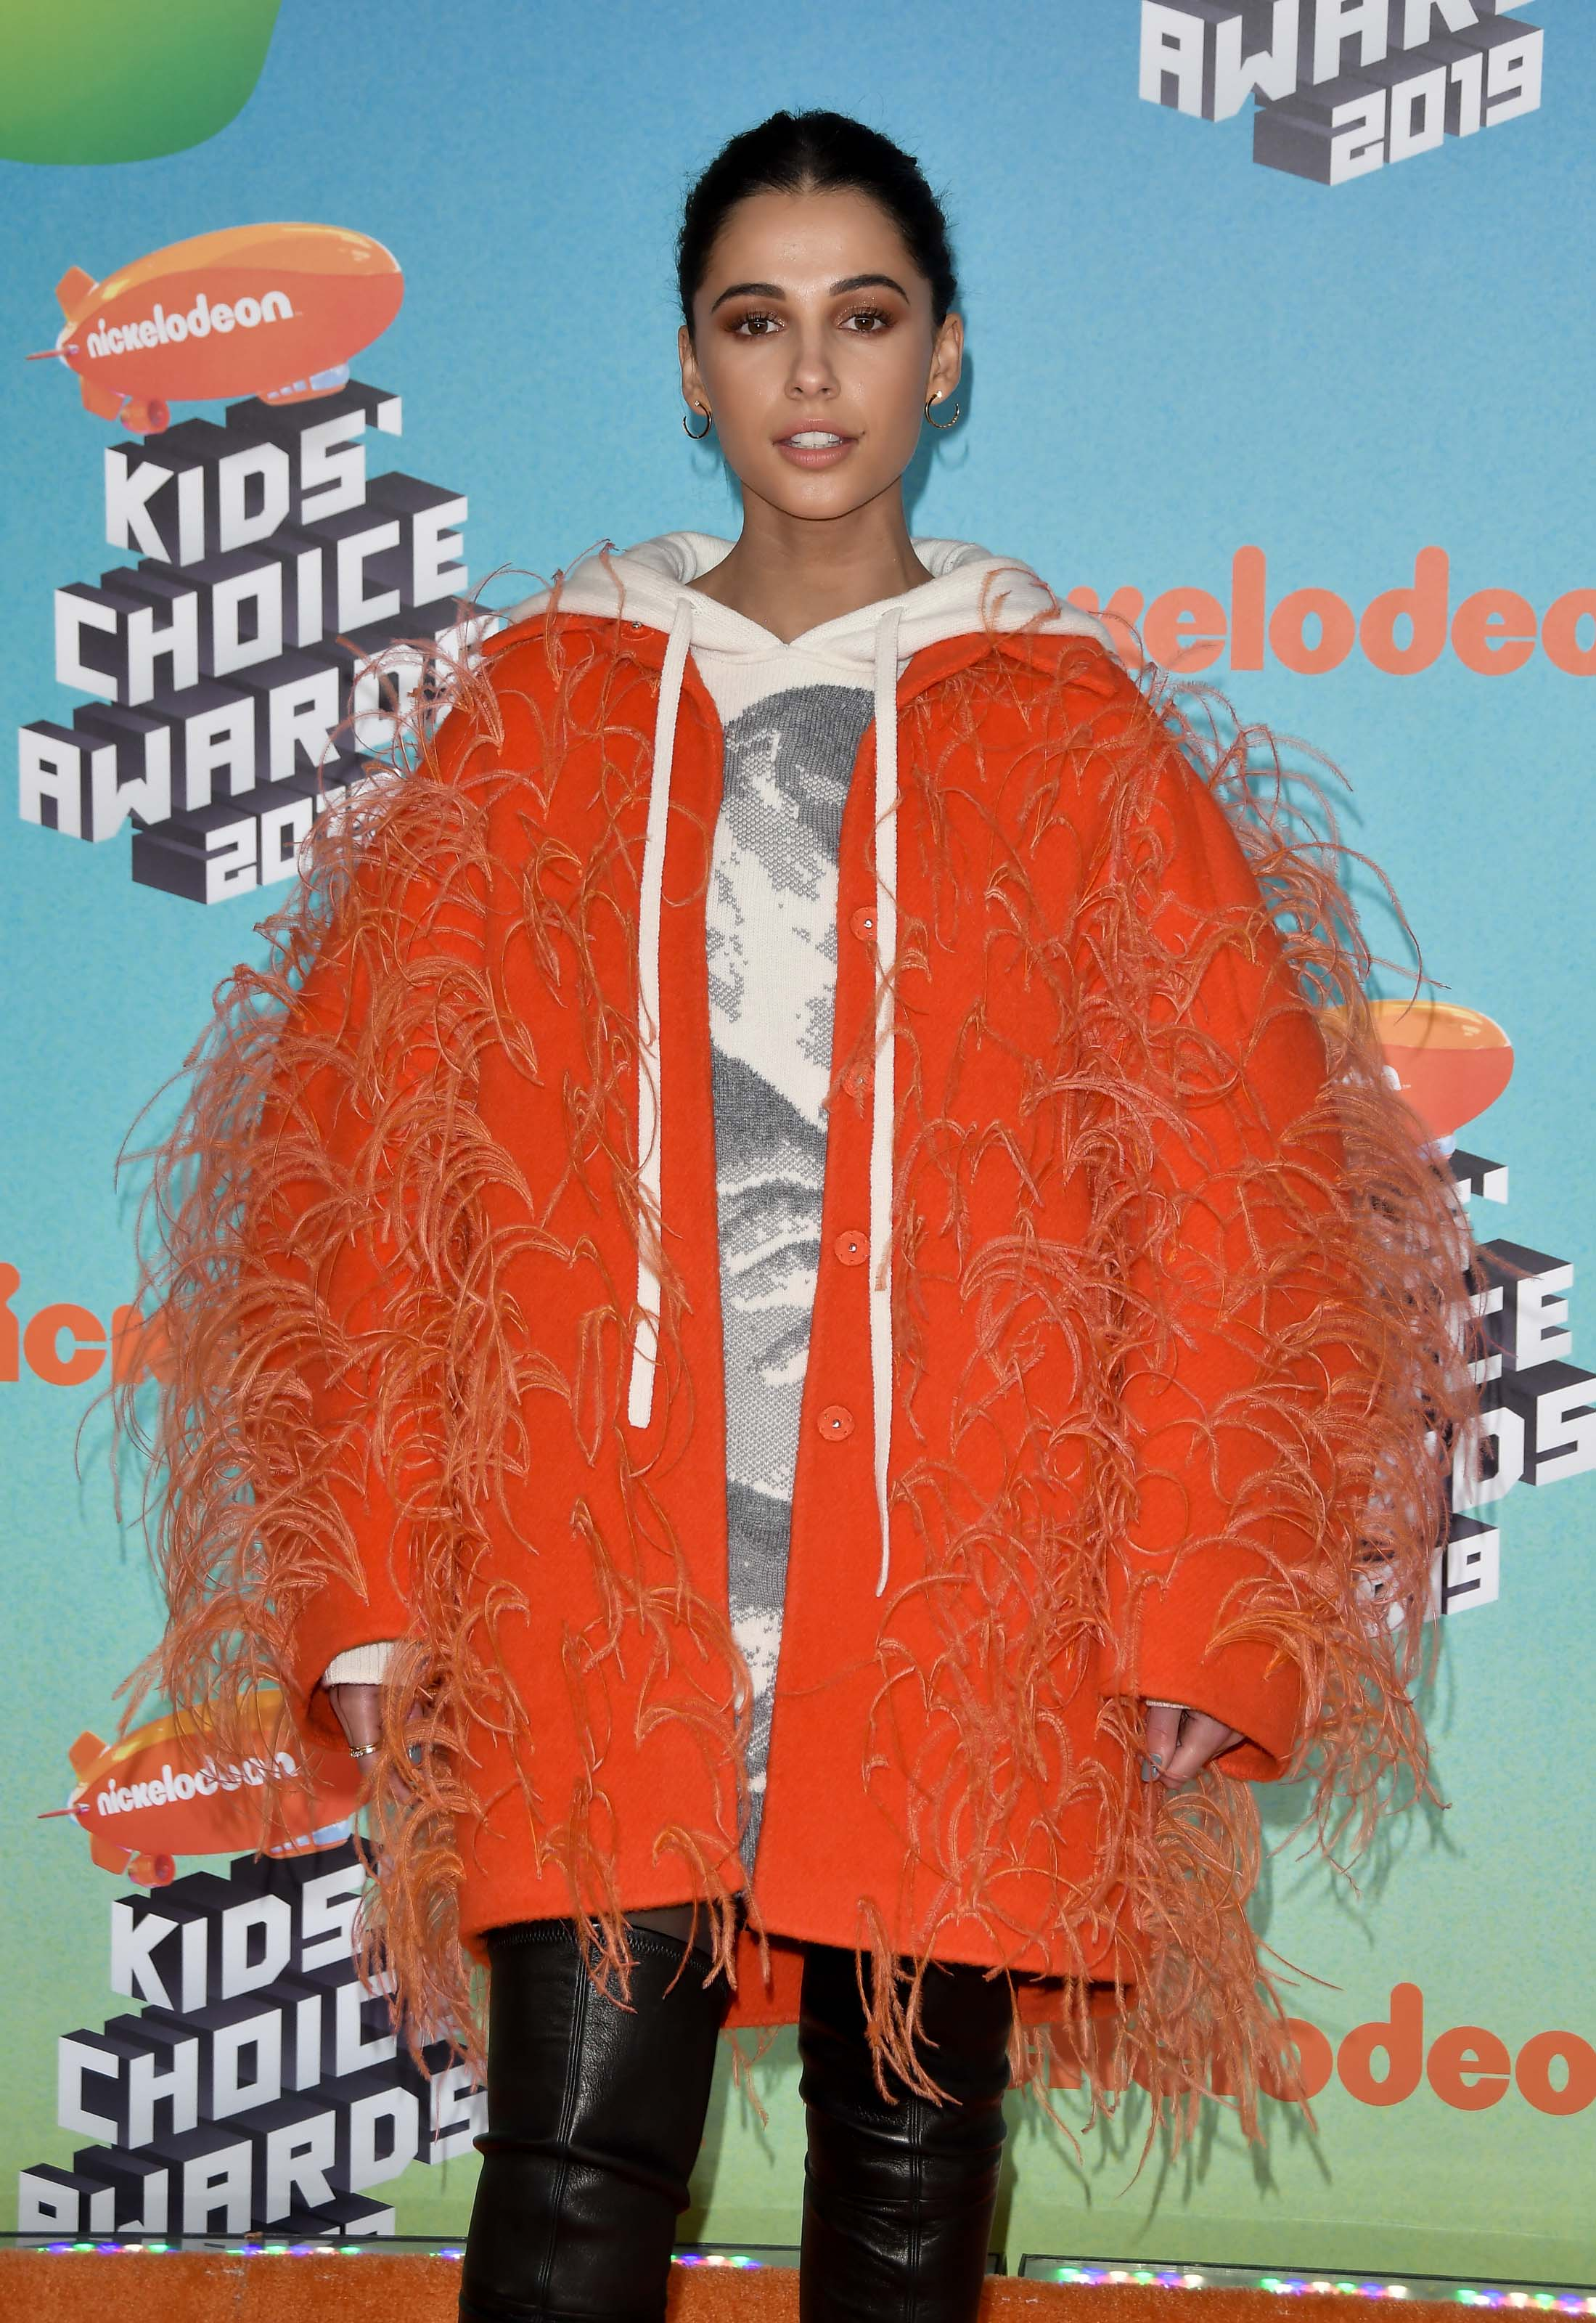 Naomi Scott attending Nickelodeon Kids' Choice Awards